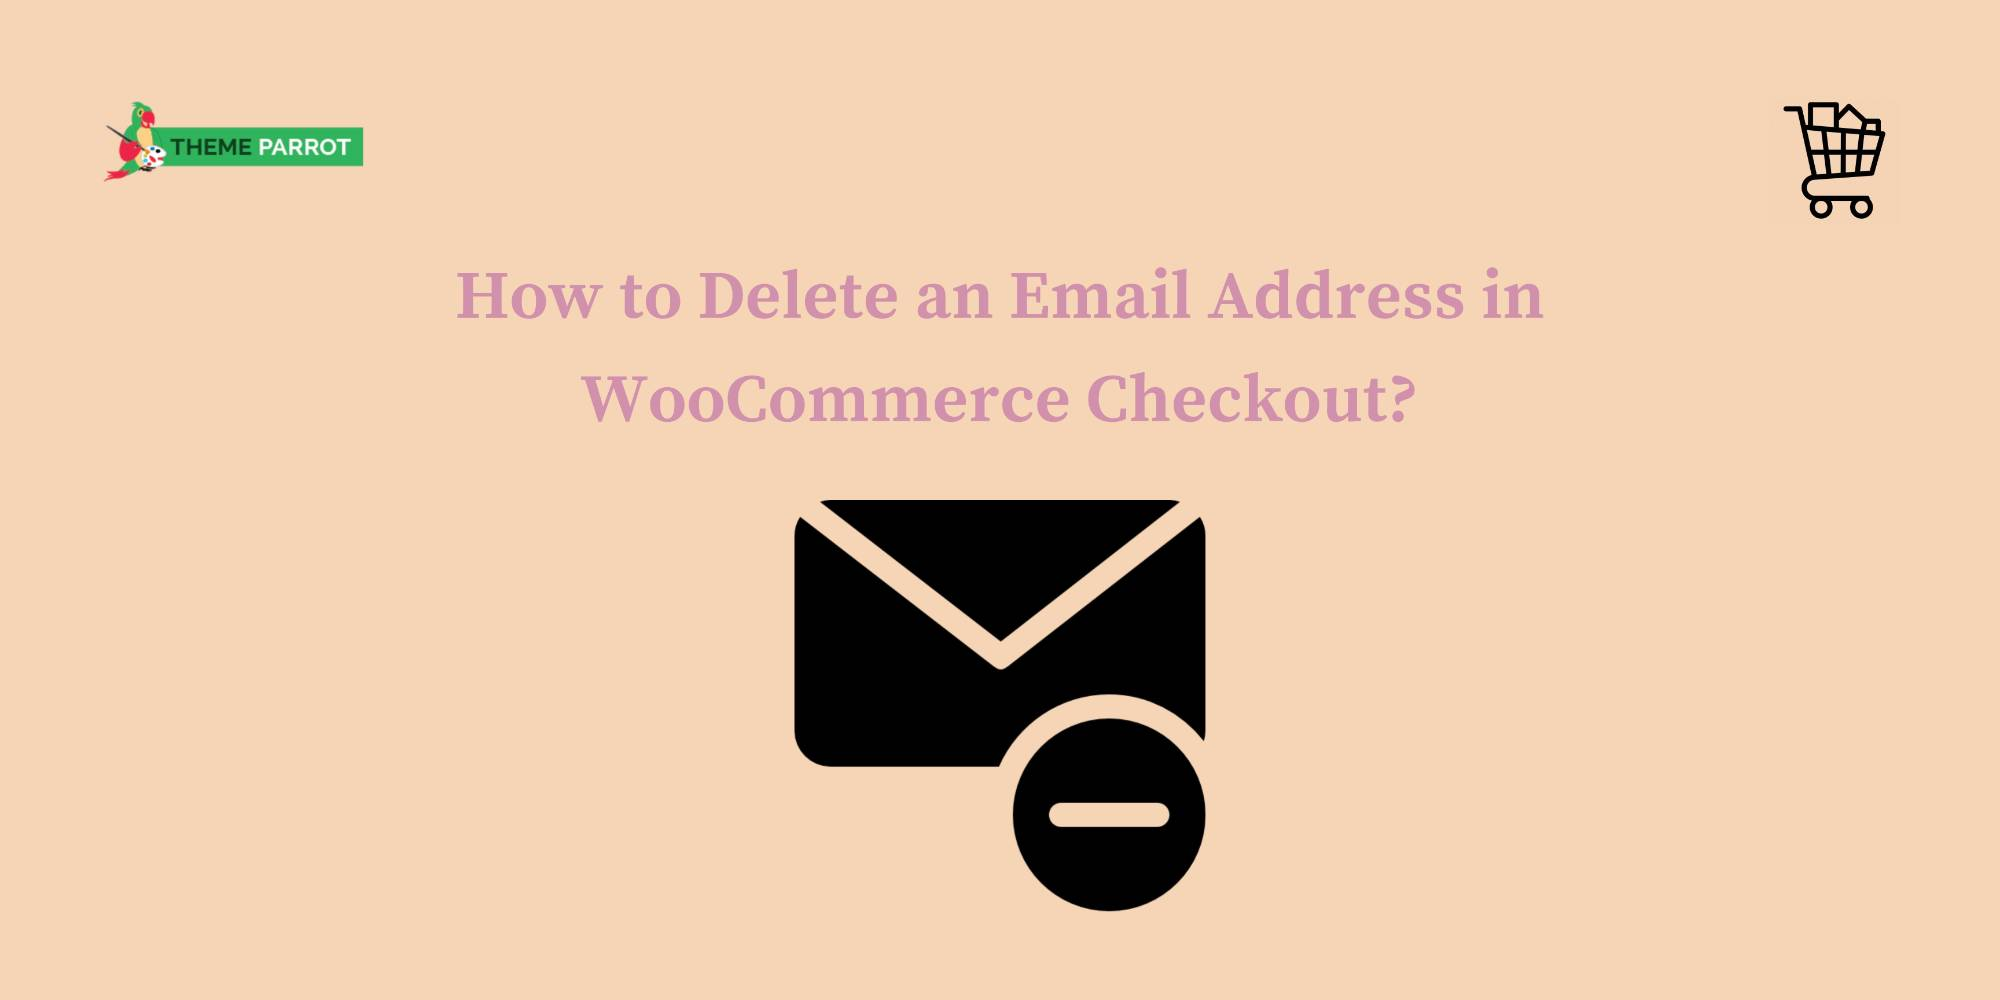 how to delete an email address in woocommerce checkout